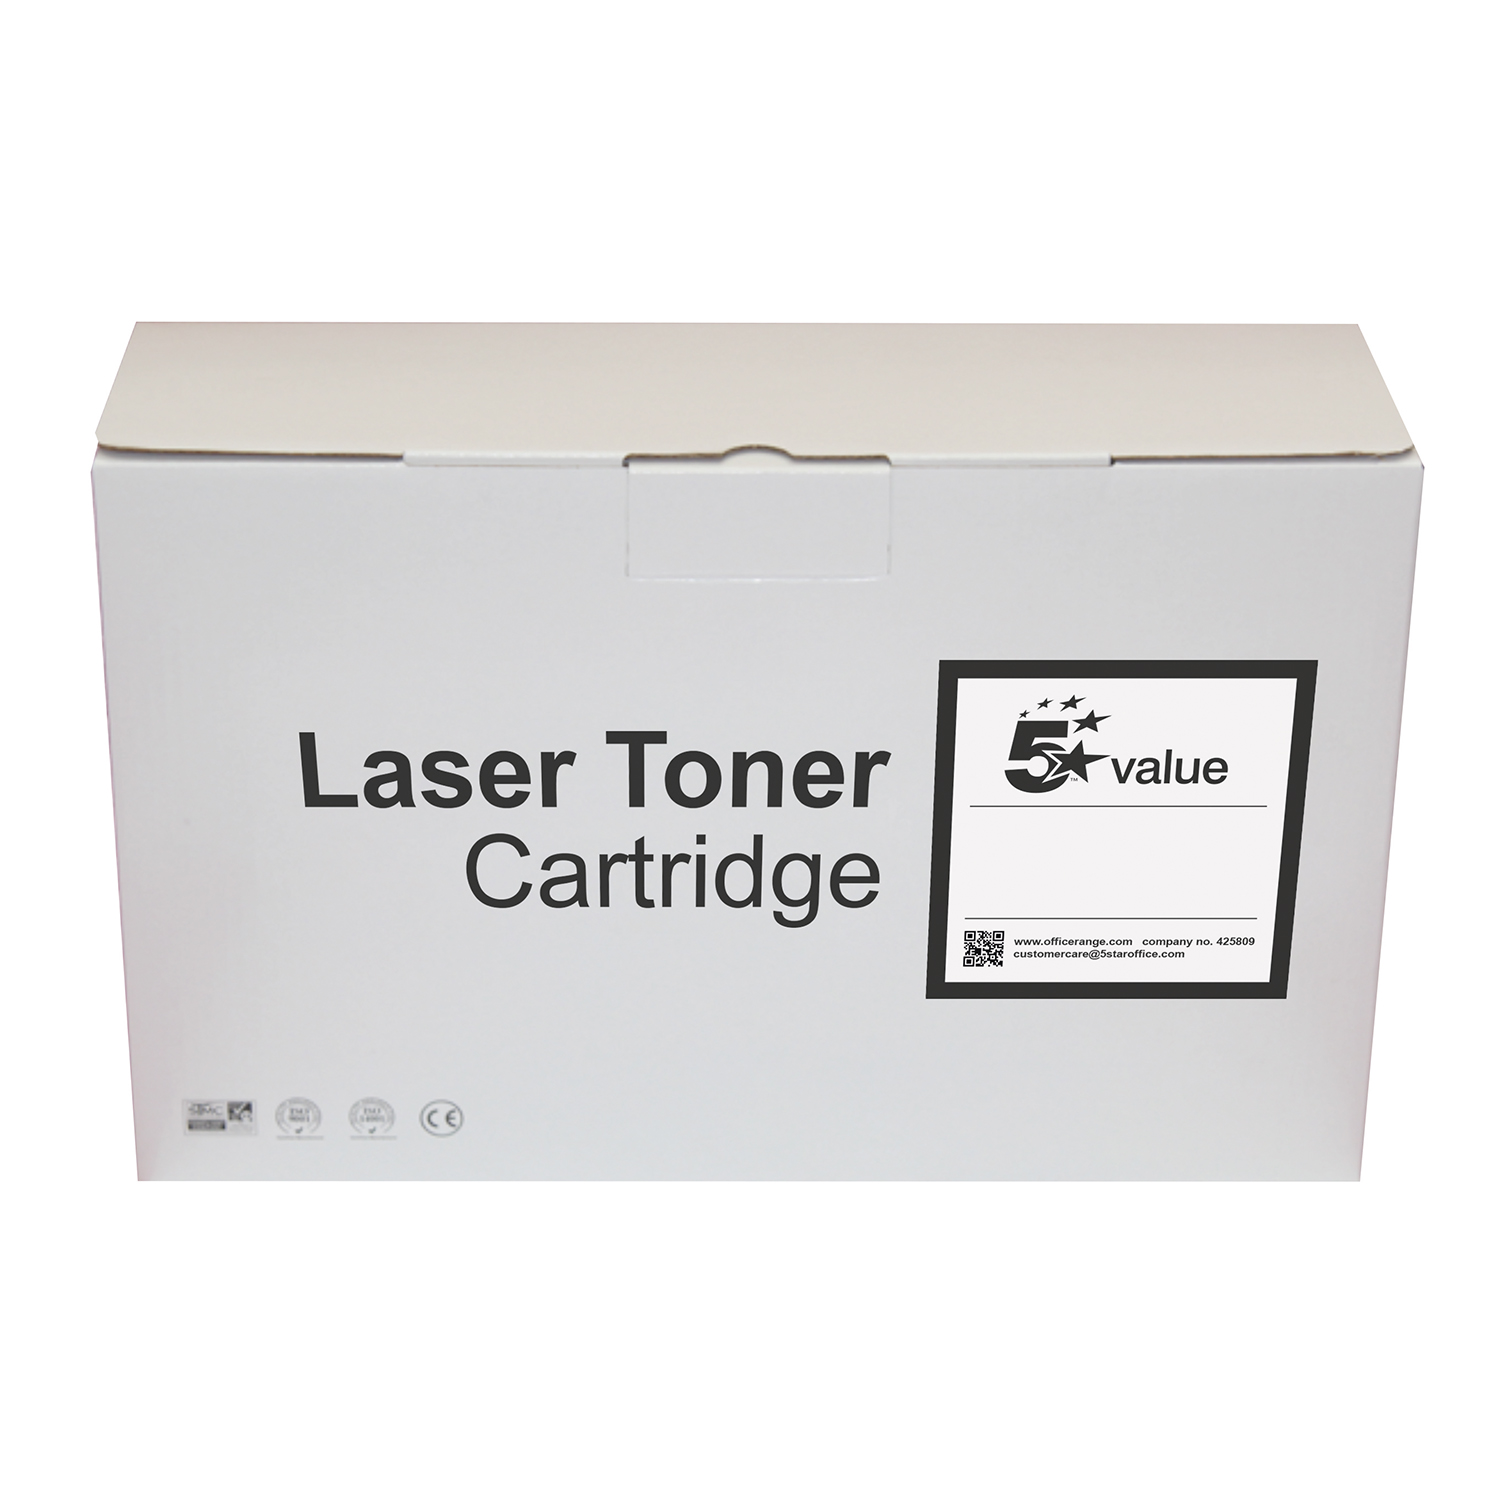 5 Star Value HP 312A Toner Cartridge Yellow CF382A